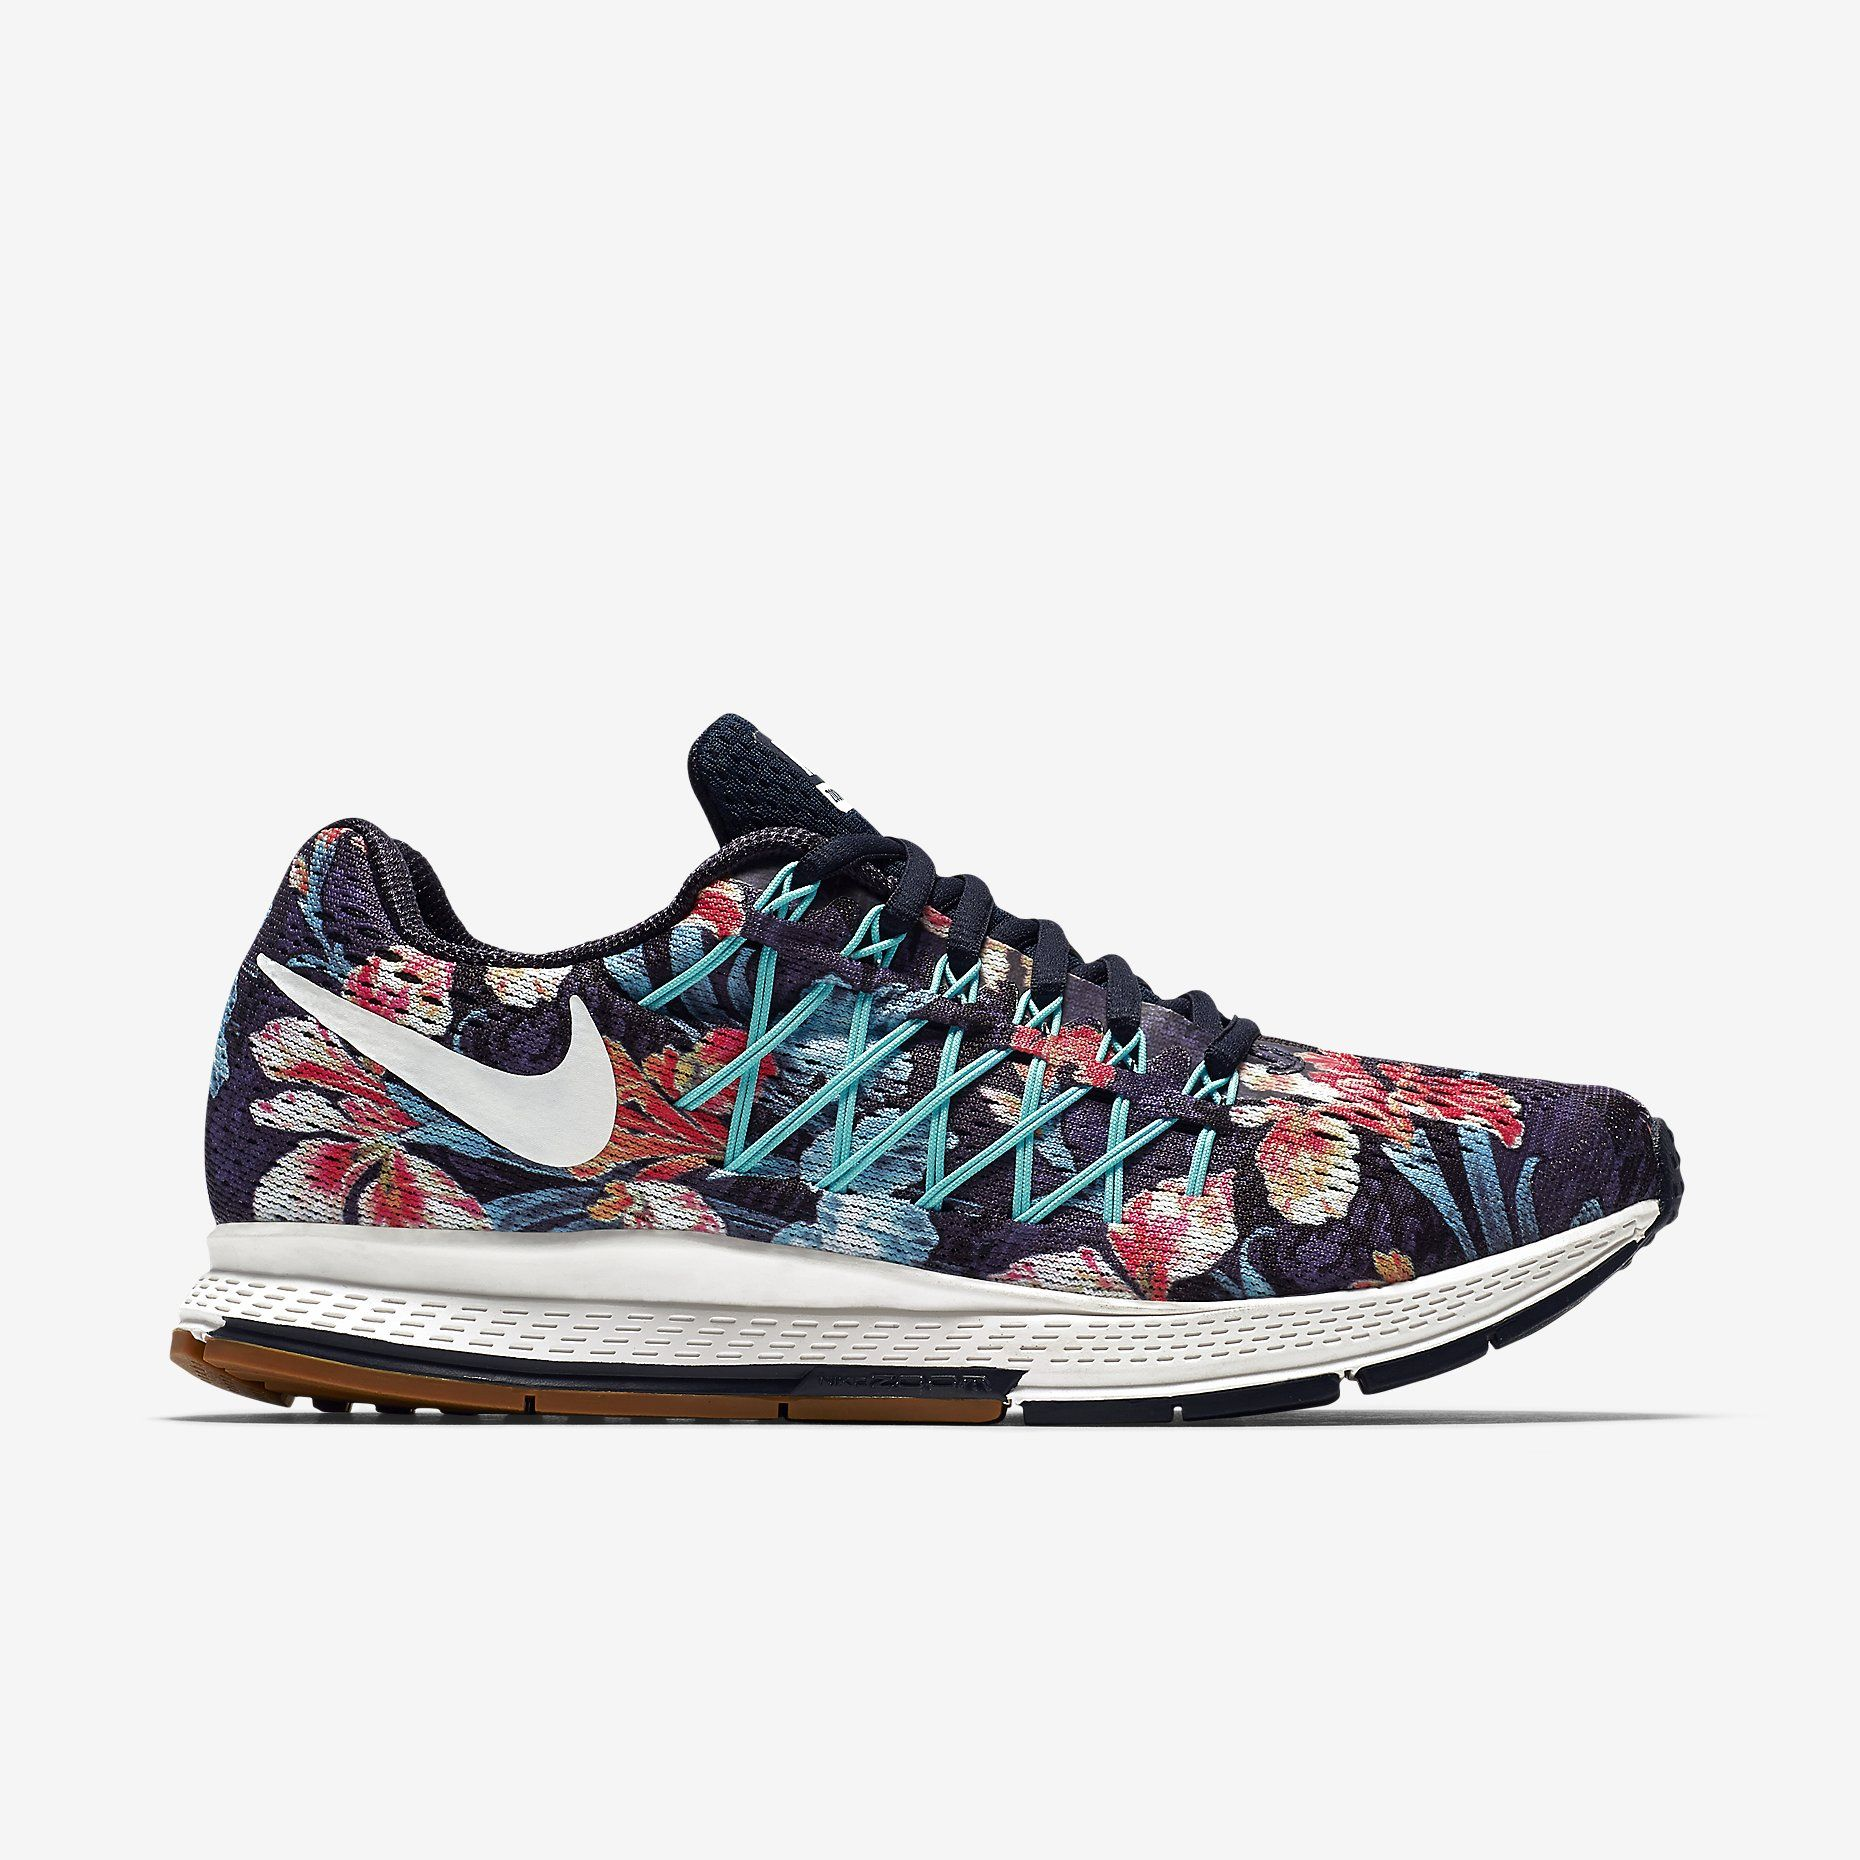 new product d8c84 cdb1e Nike Air Zoom Pegasus 32 Photosynthesis Women s Running Shoe. Nike Store